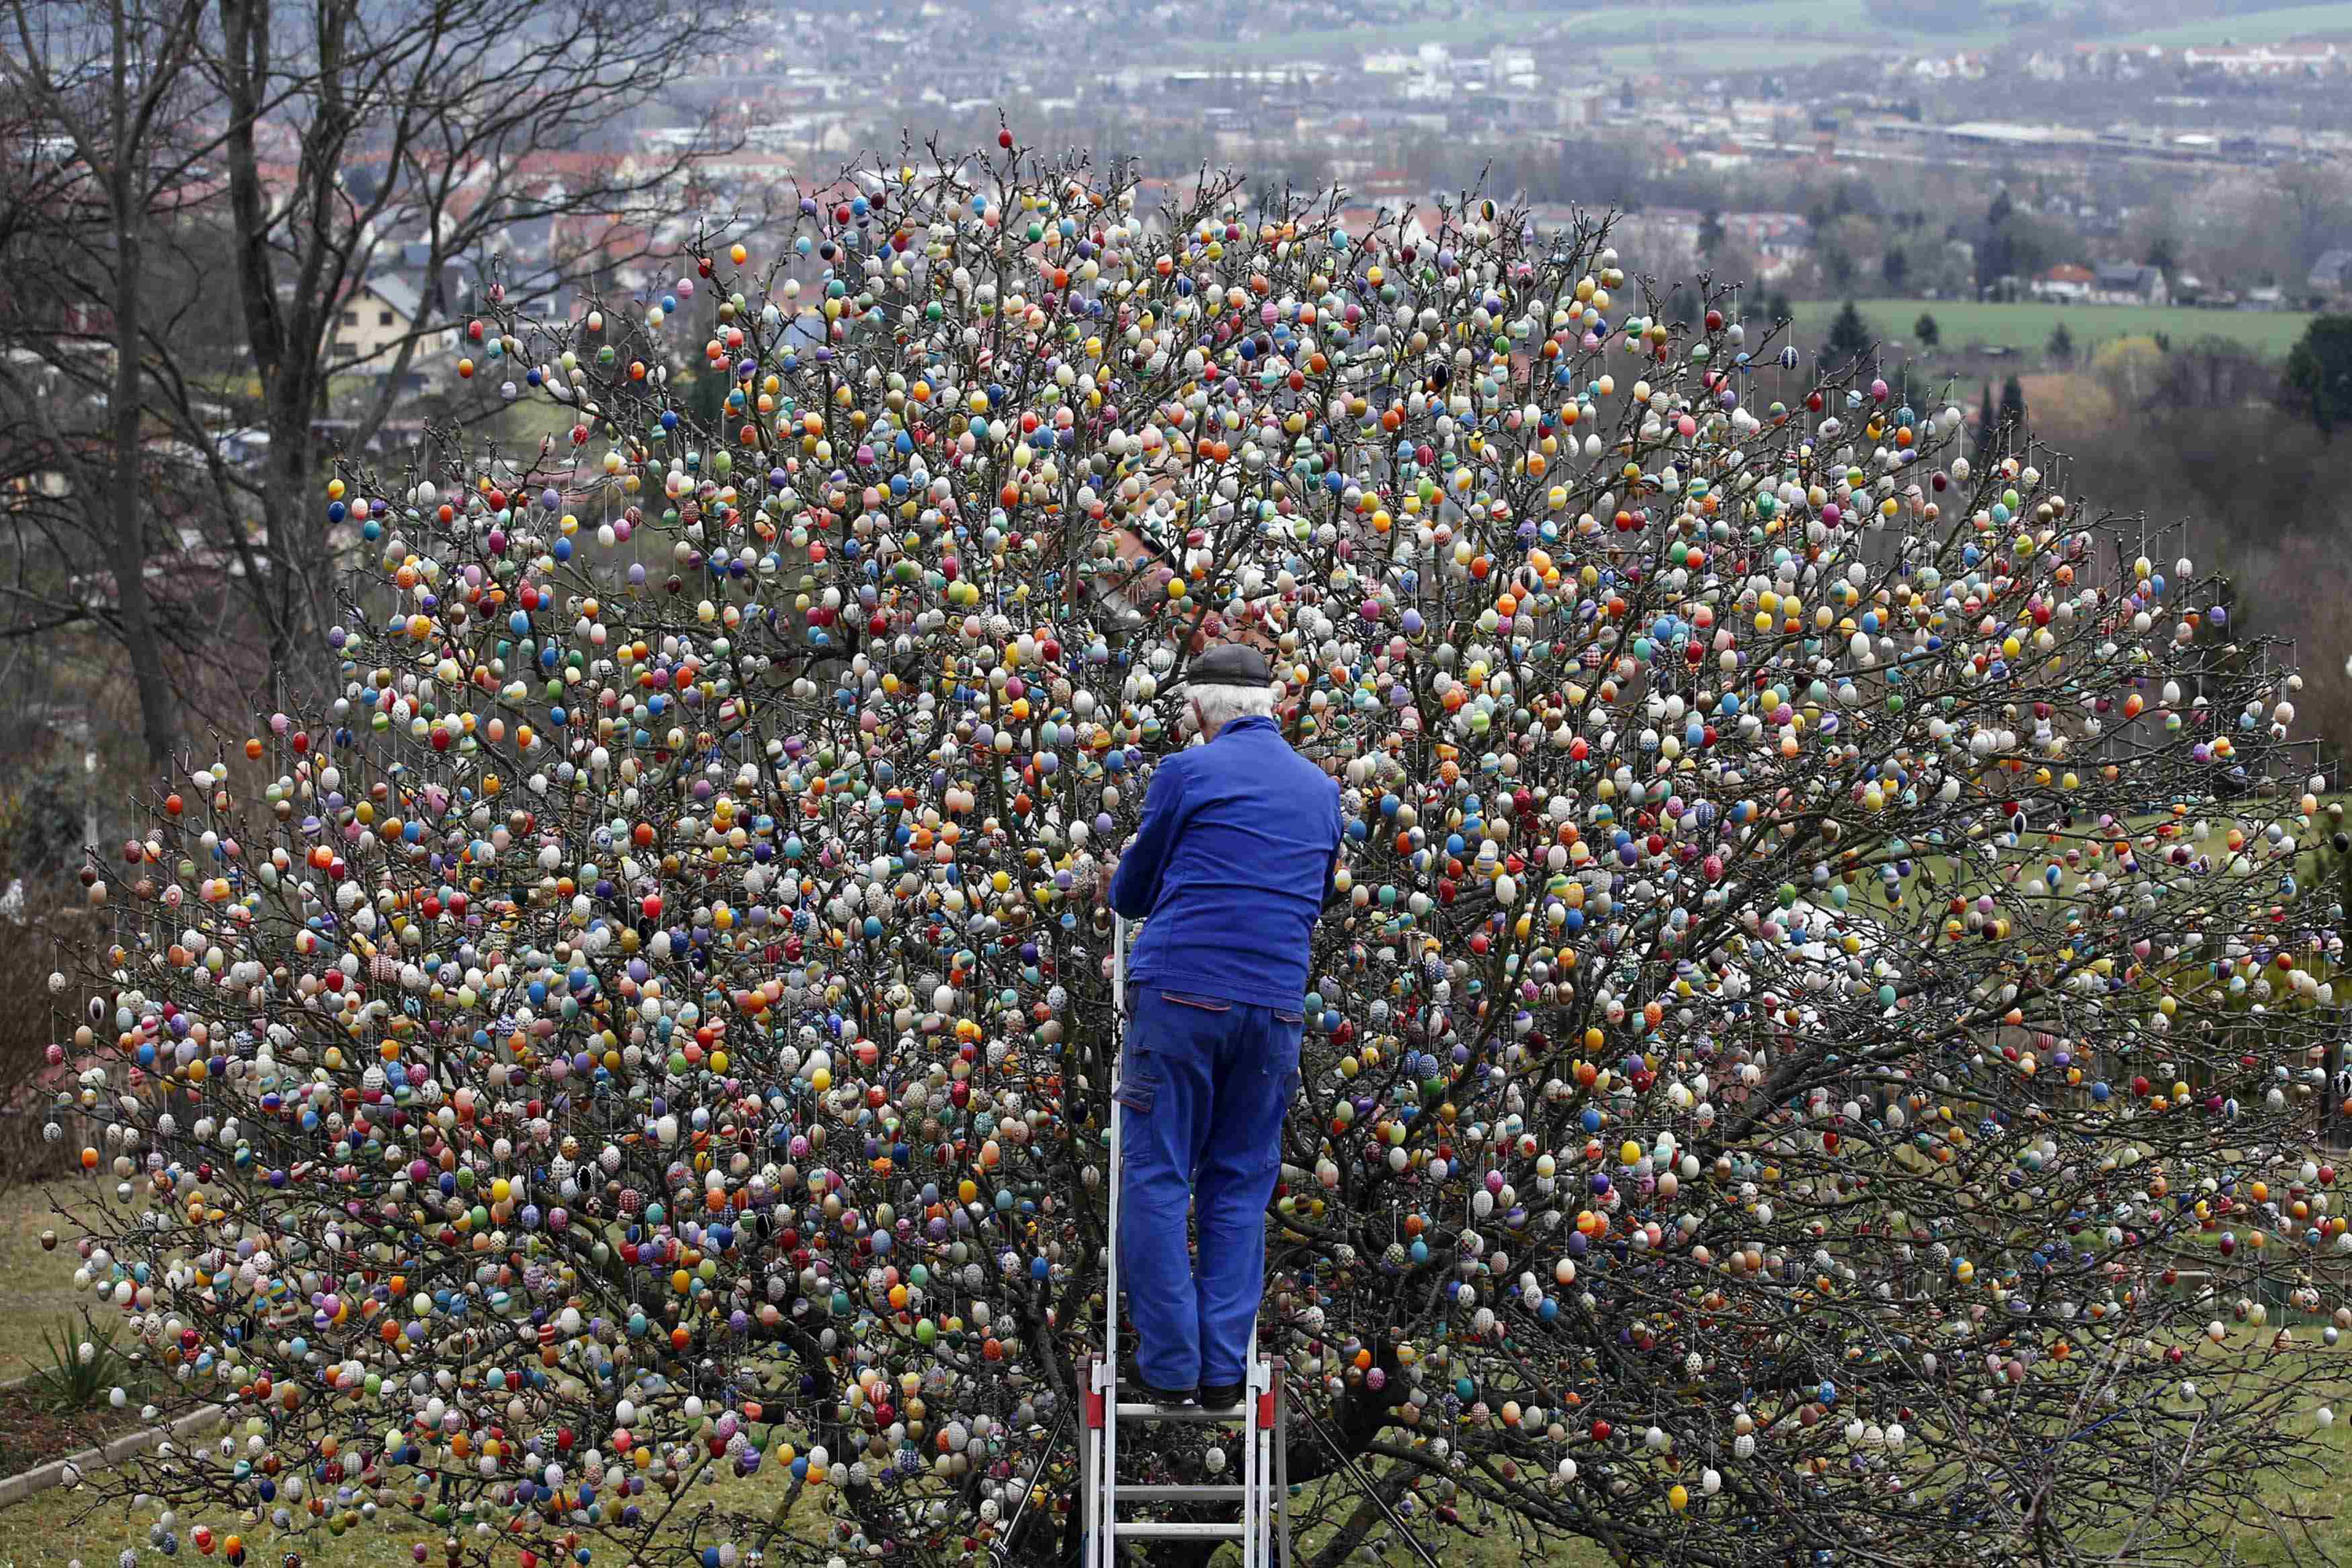 German pensioner Volker Kraft decorates an apple tree with Easter eggs in the garden of his summerhouse, in the eastern German town of Saalfeld, March 19, 2014.  Each year since 1965 Volker and his wife Christa spend up to two weeks decorating the tree with their collection of 10,000 colourful hand-painted Easter eggs.